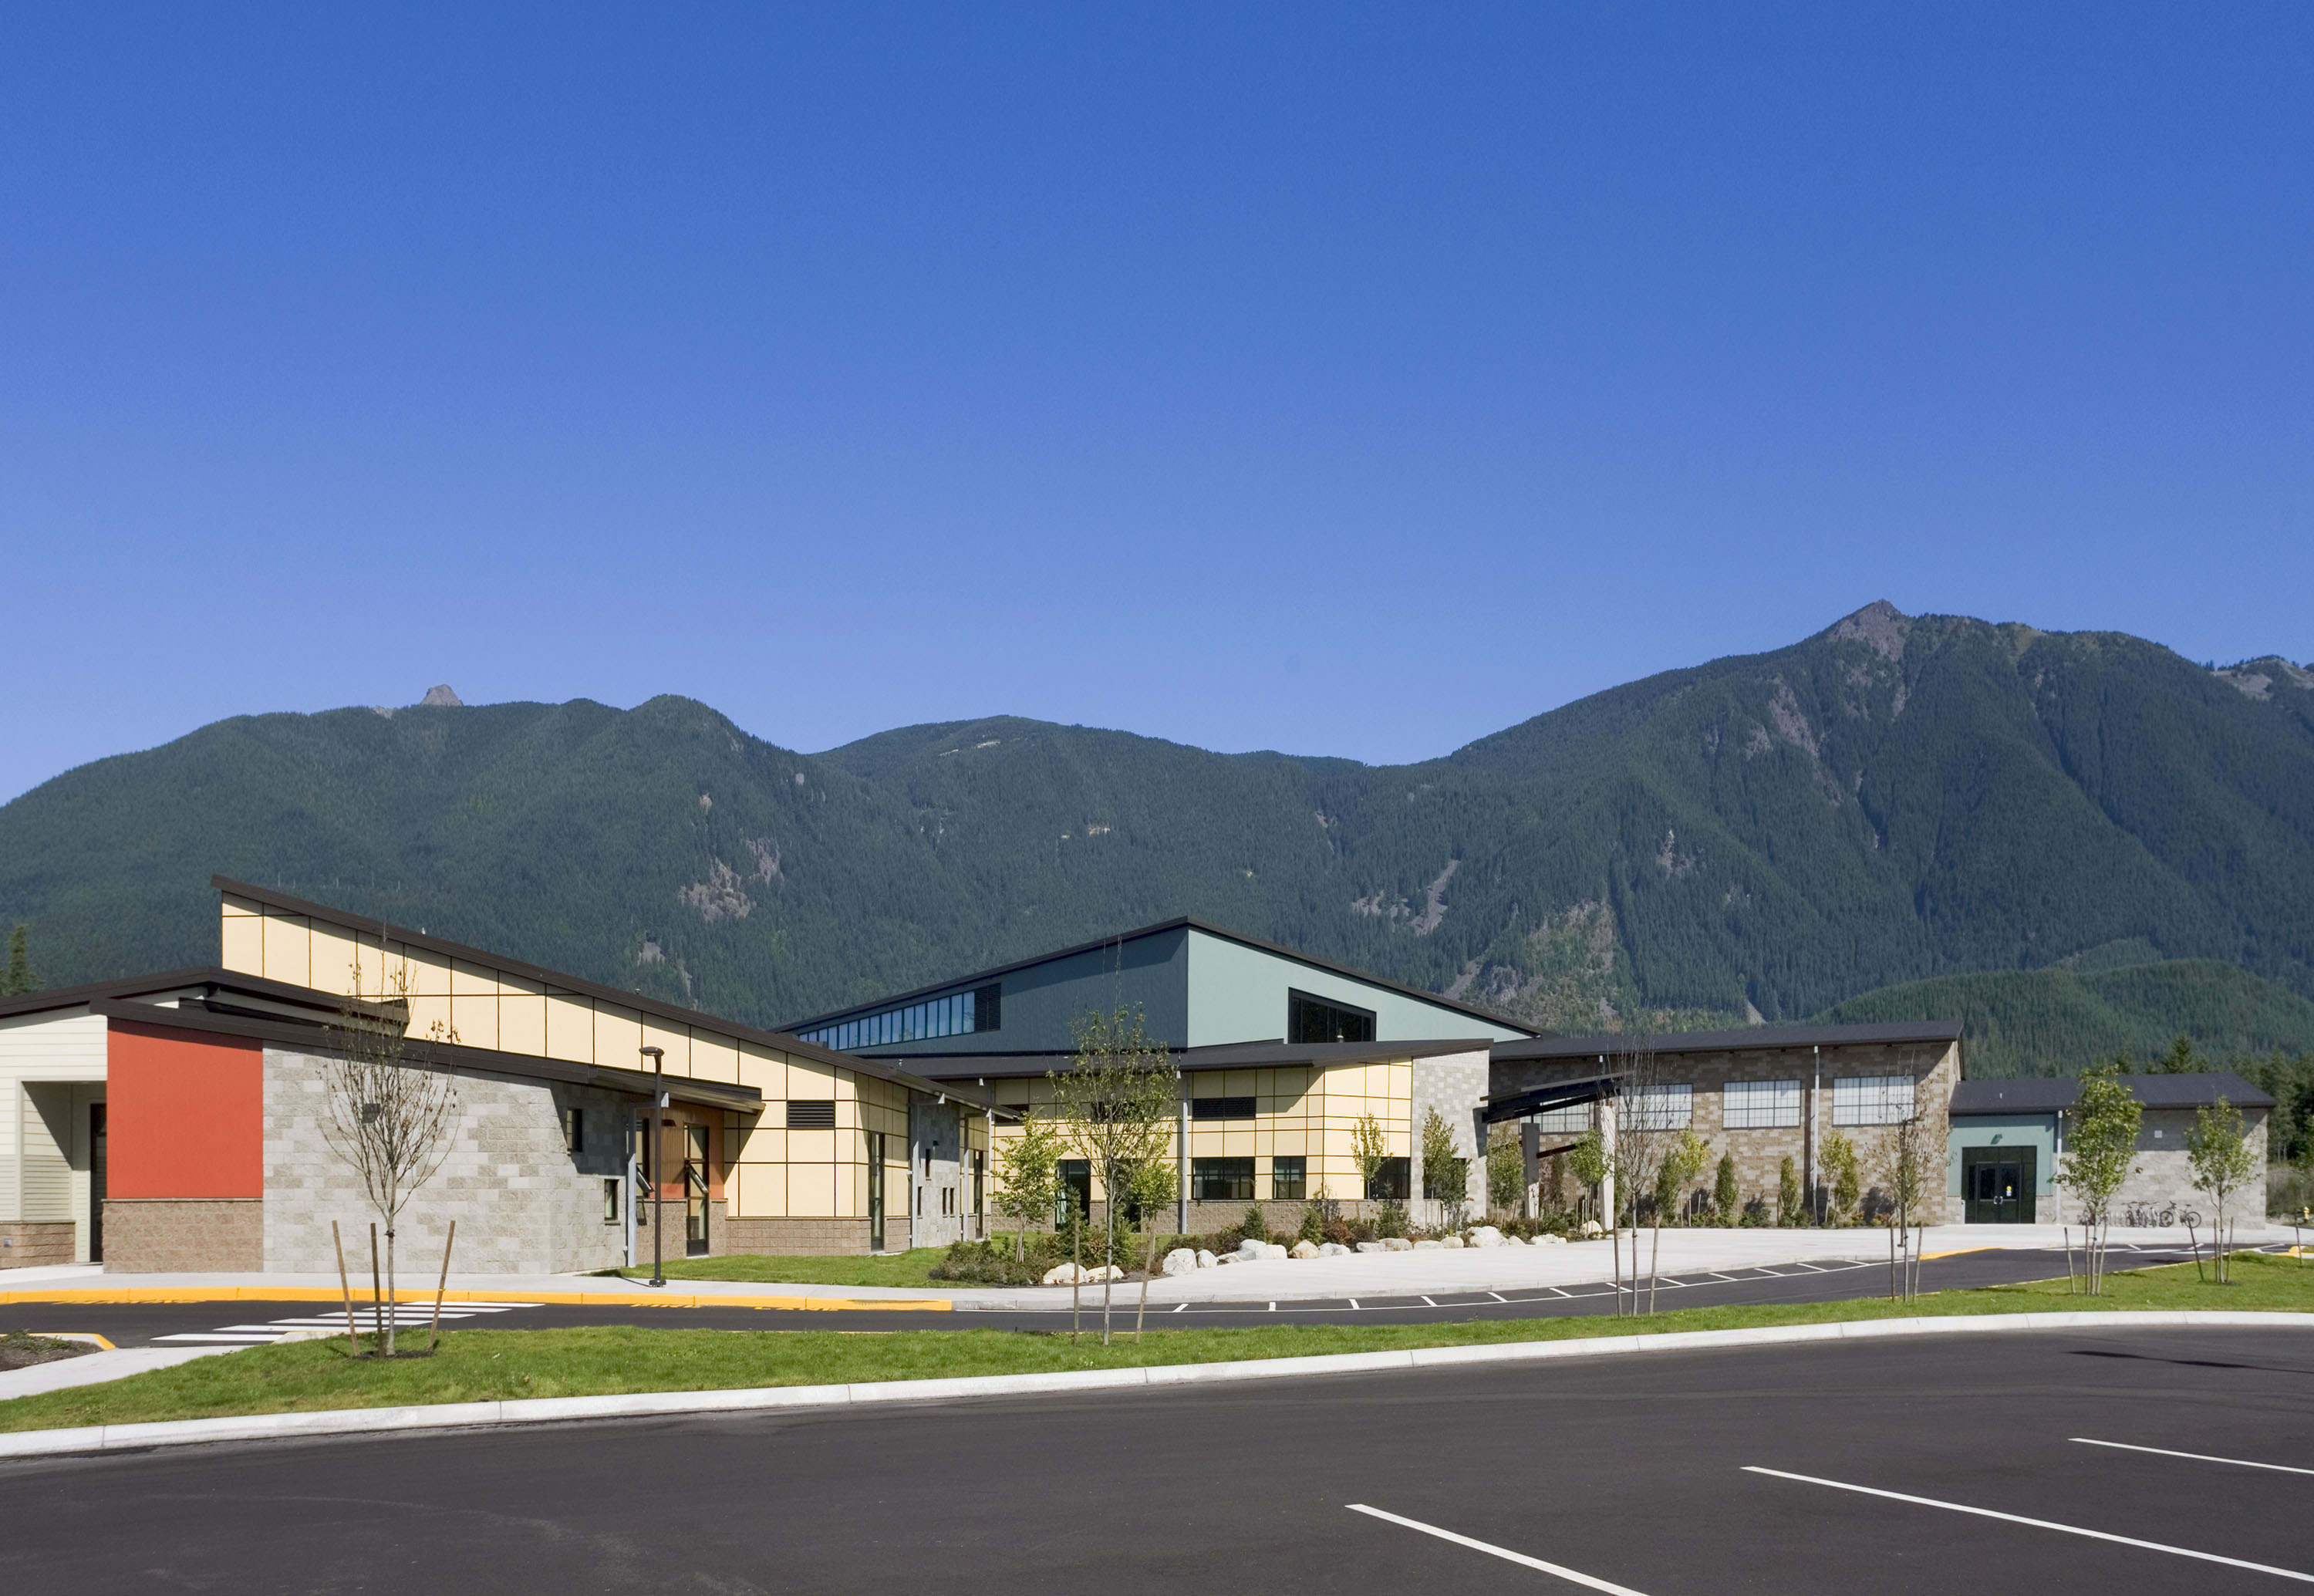 Wide photo of the school with mountains in the background.